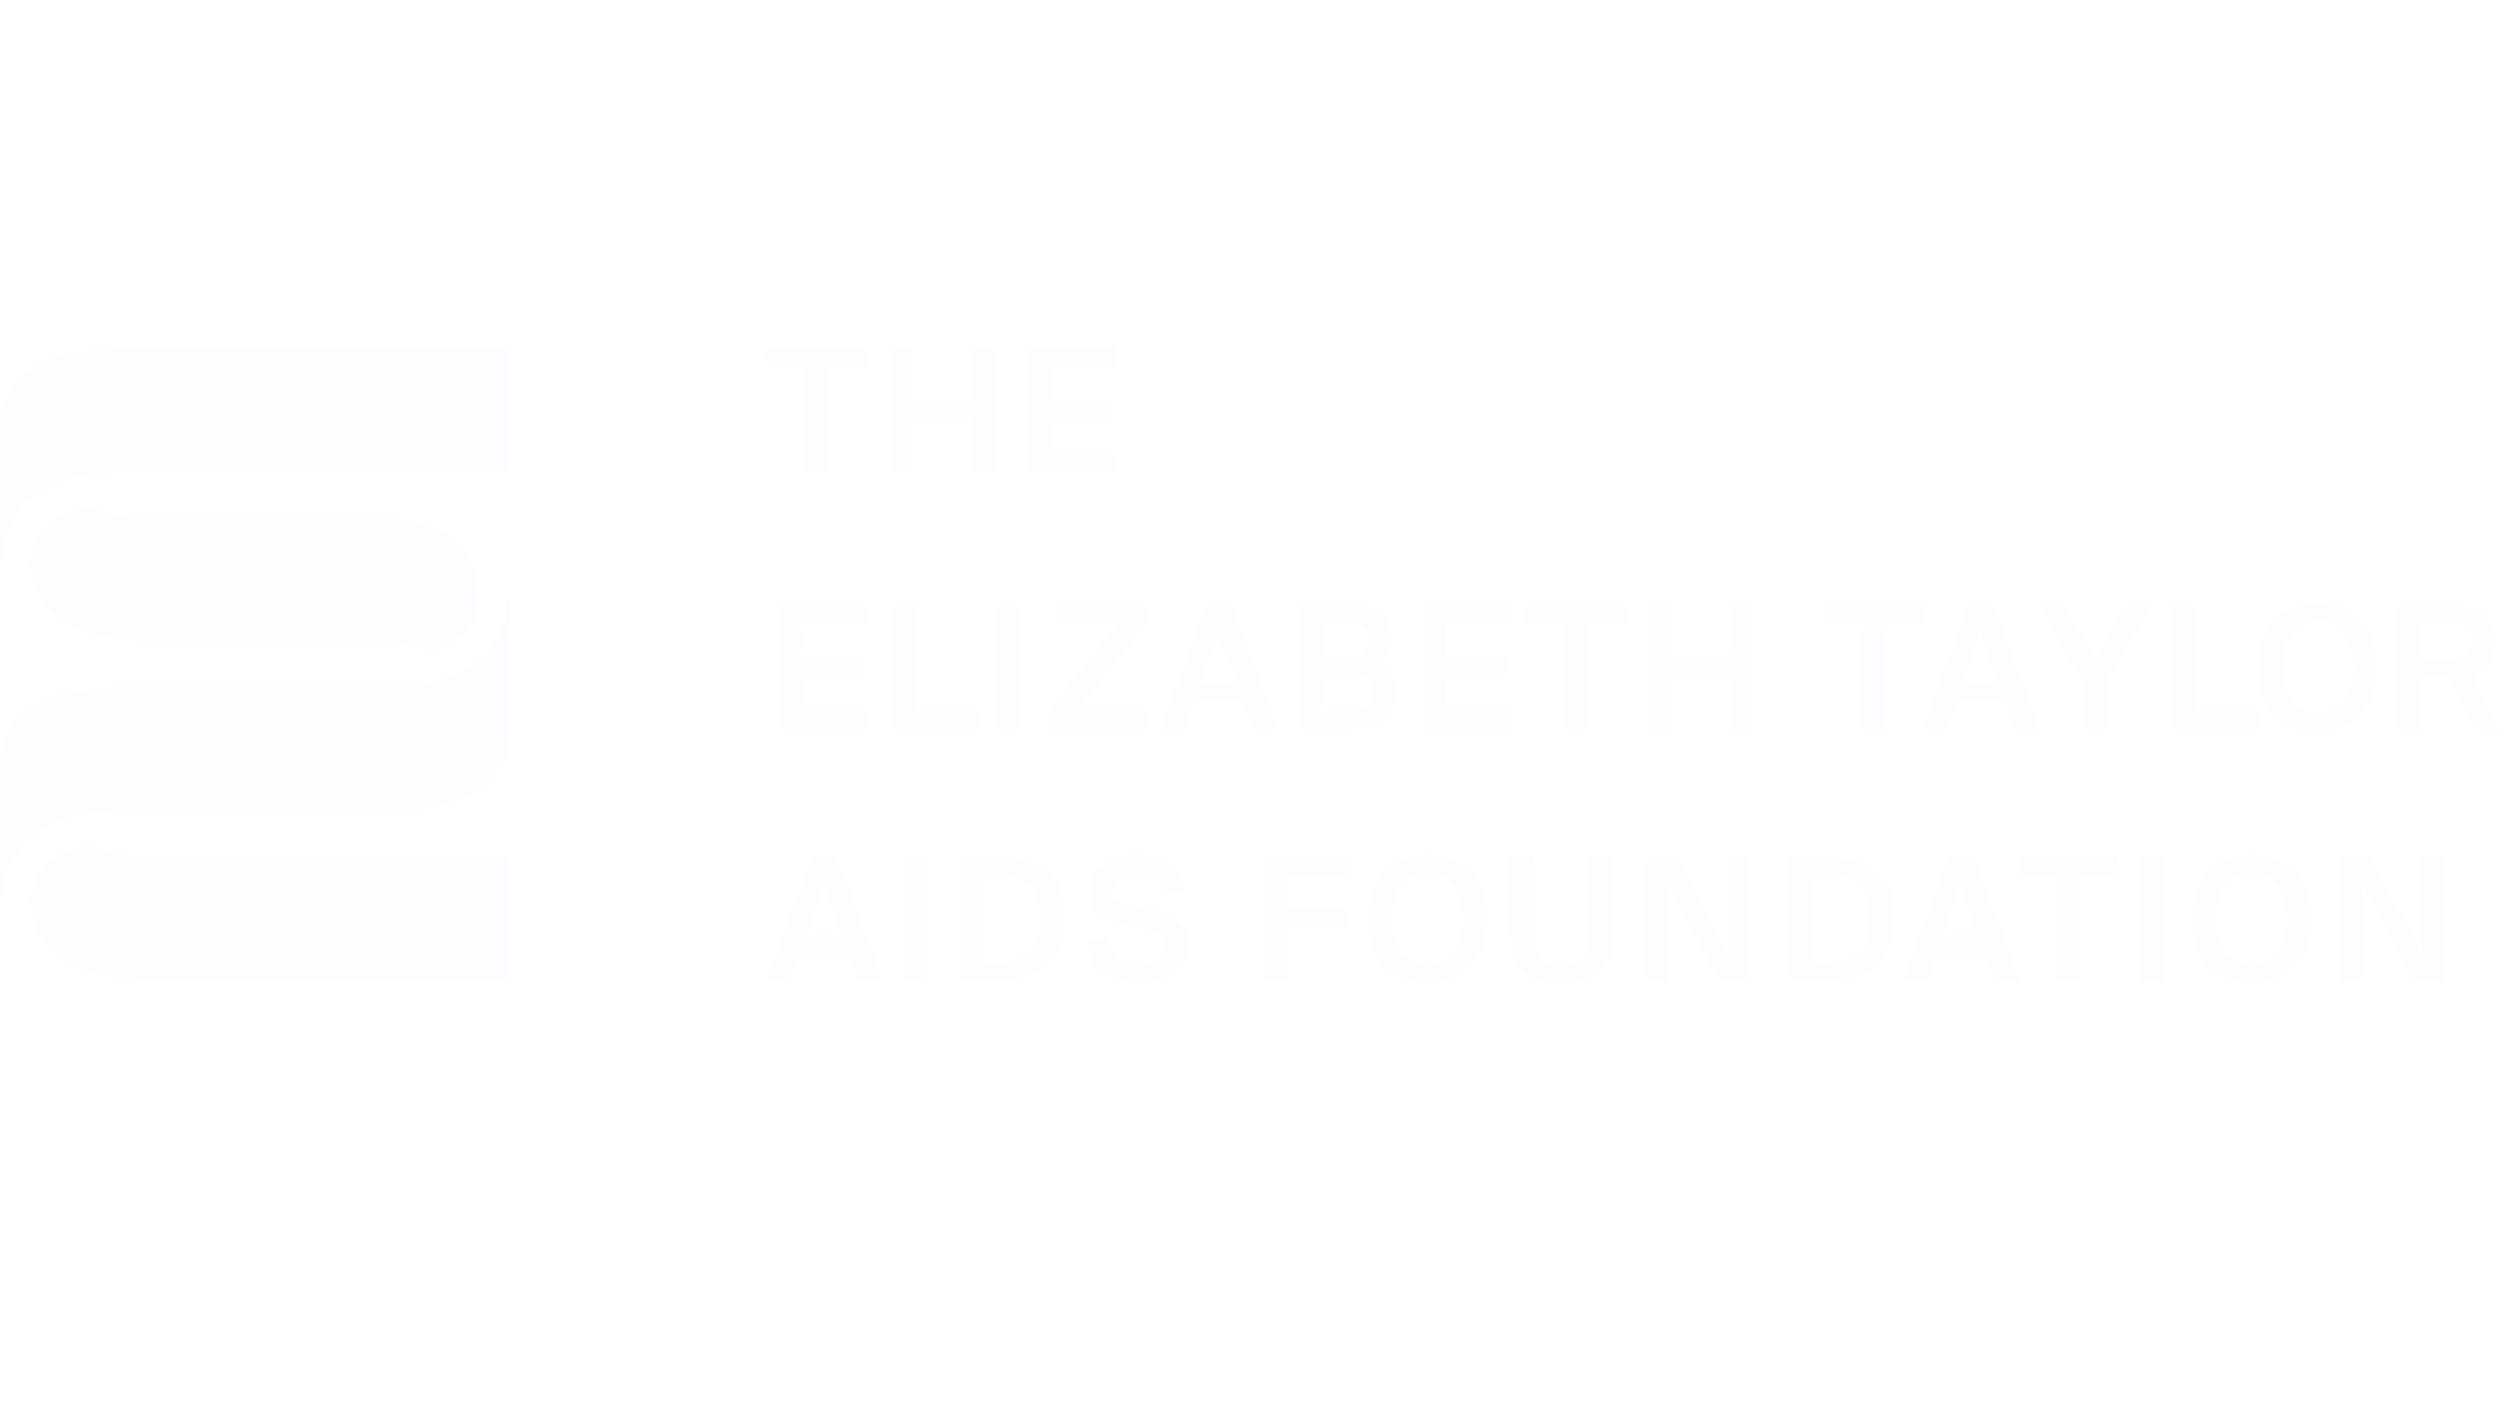 The Elizabeth Taylor Aids Foundation logo